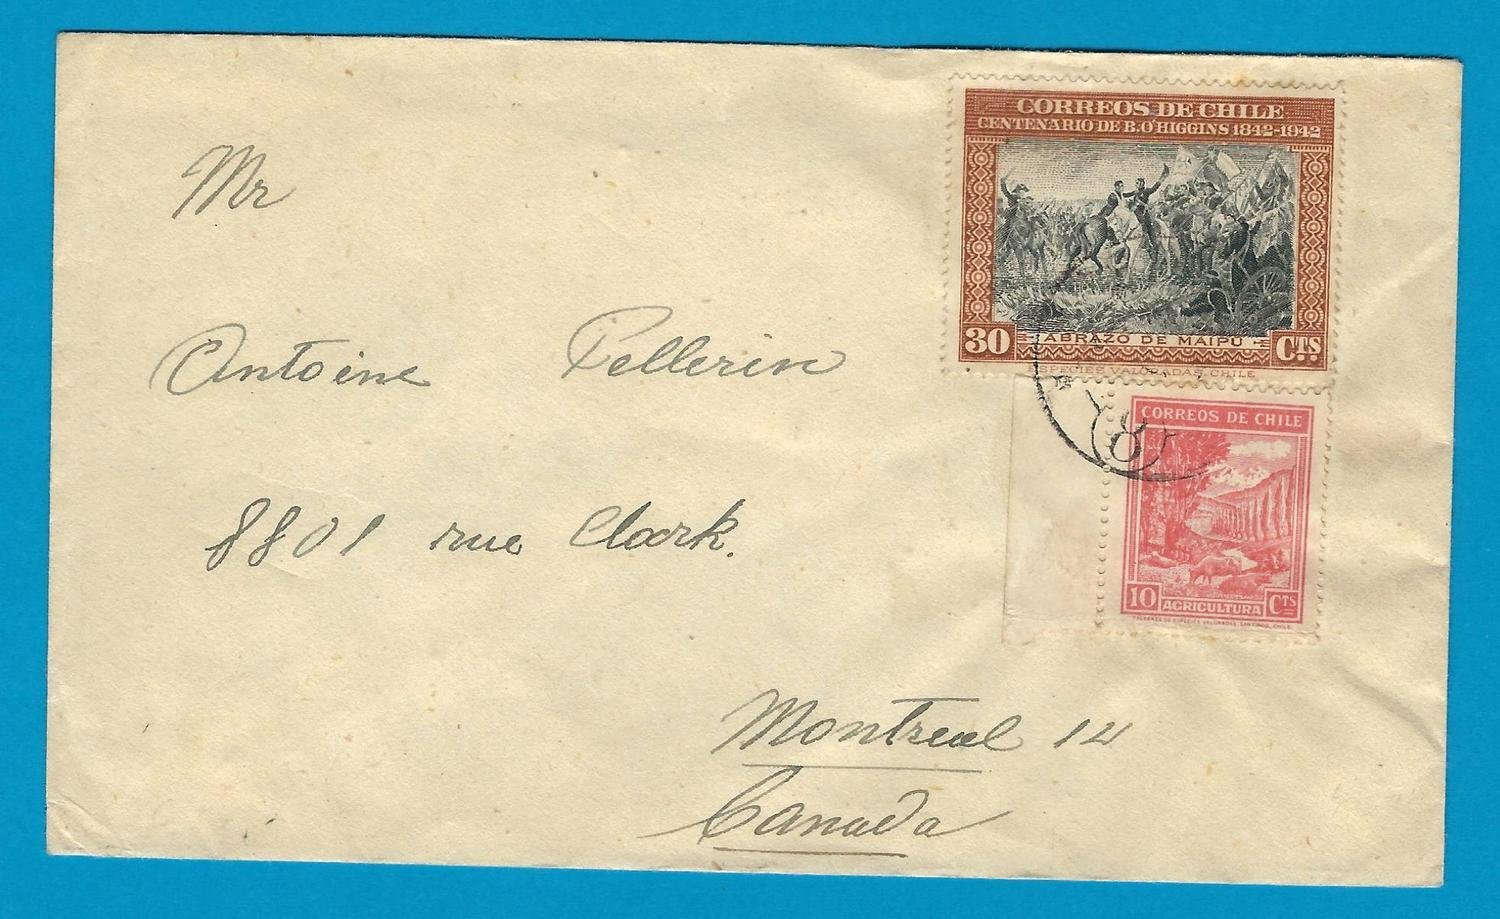 CHILE cover 1947 Iquique with Ambulancia 8 to Canada